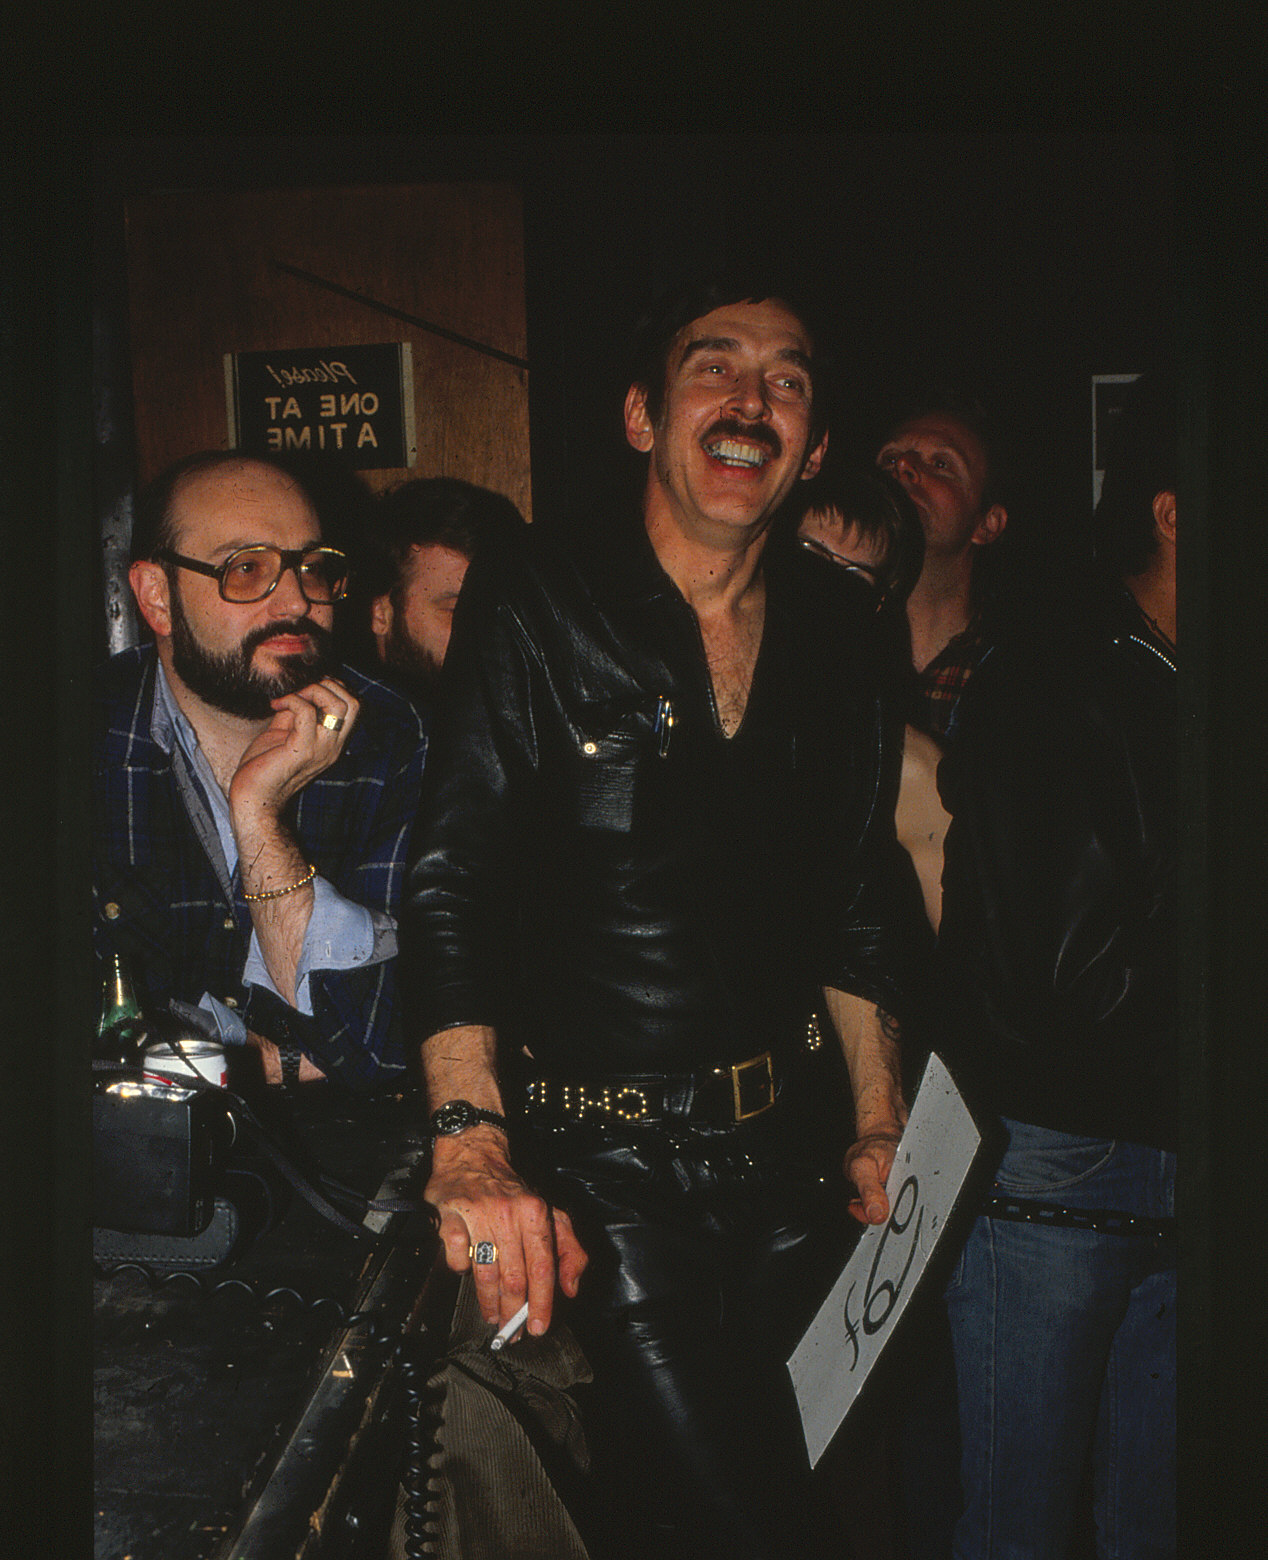 An undated photo of Chuck Renslow, who founded the International Mr. Leather Contest in 1979. (Photo Courtsey of the Leather Archives & Museum)